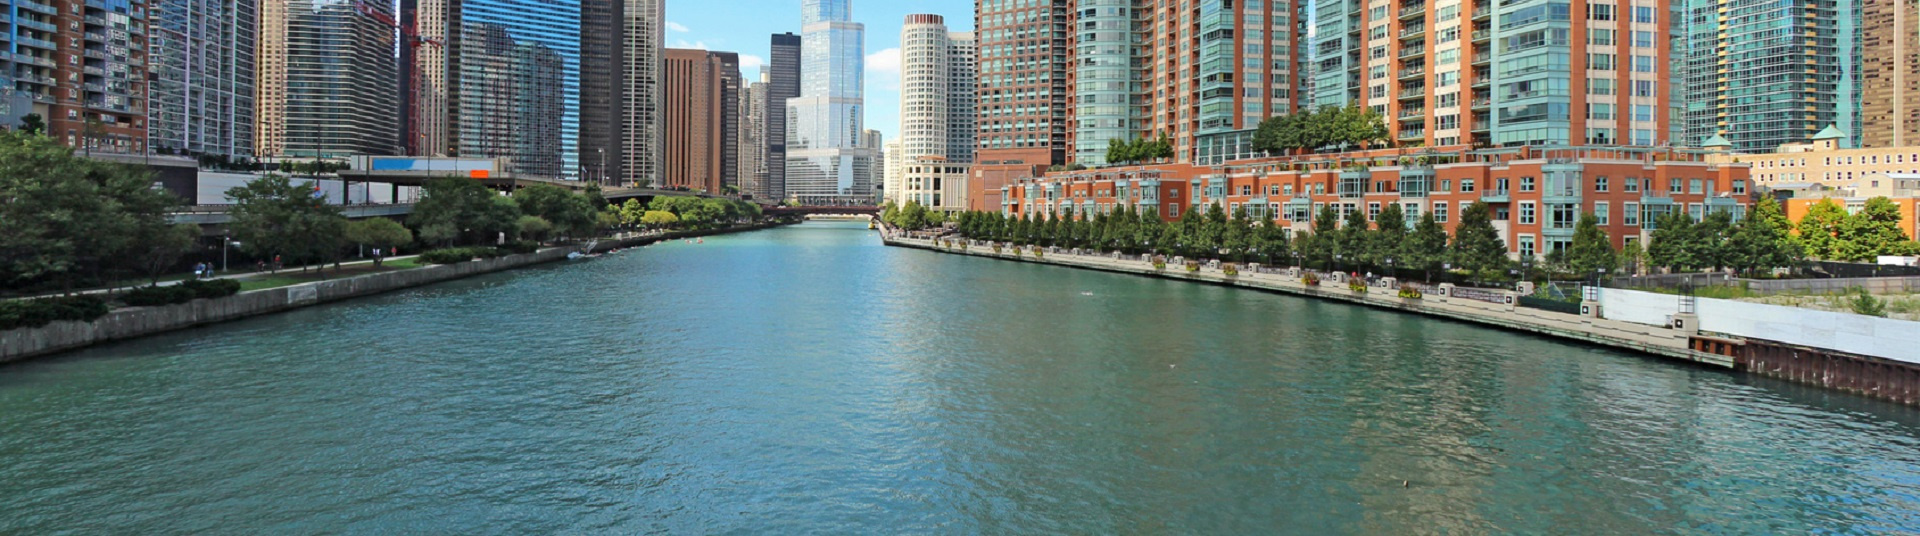 Week-end pas cher Chicago